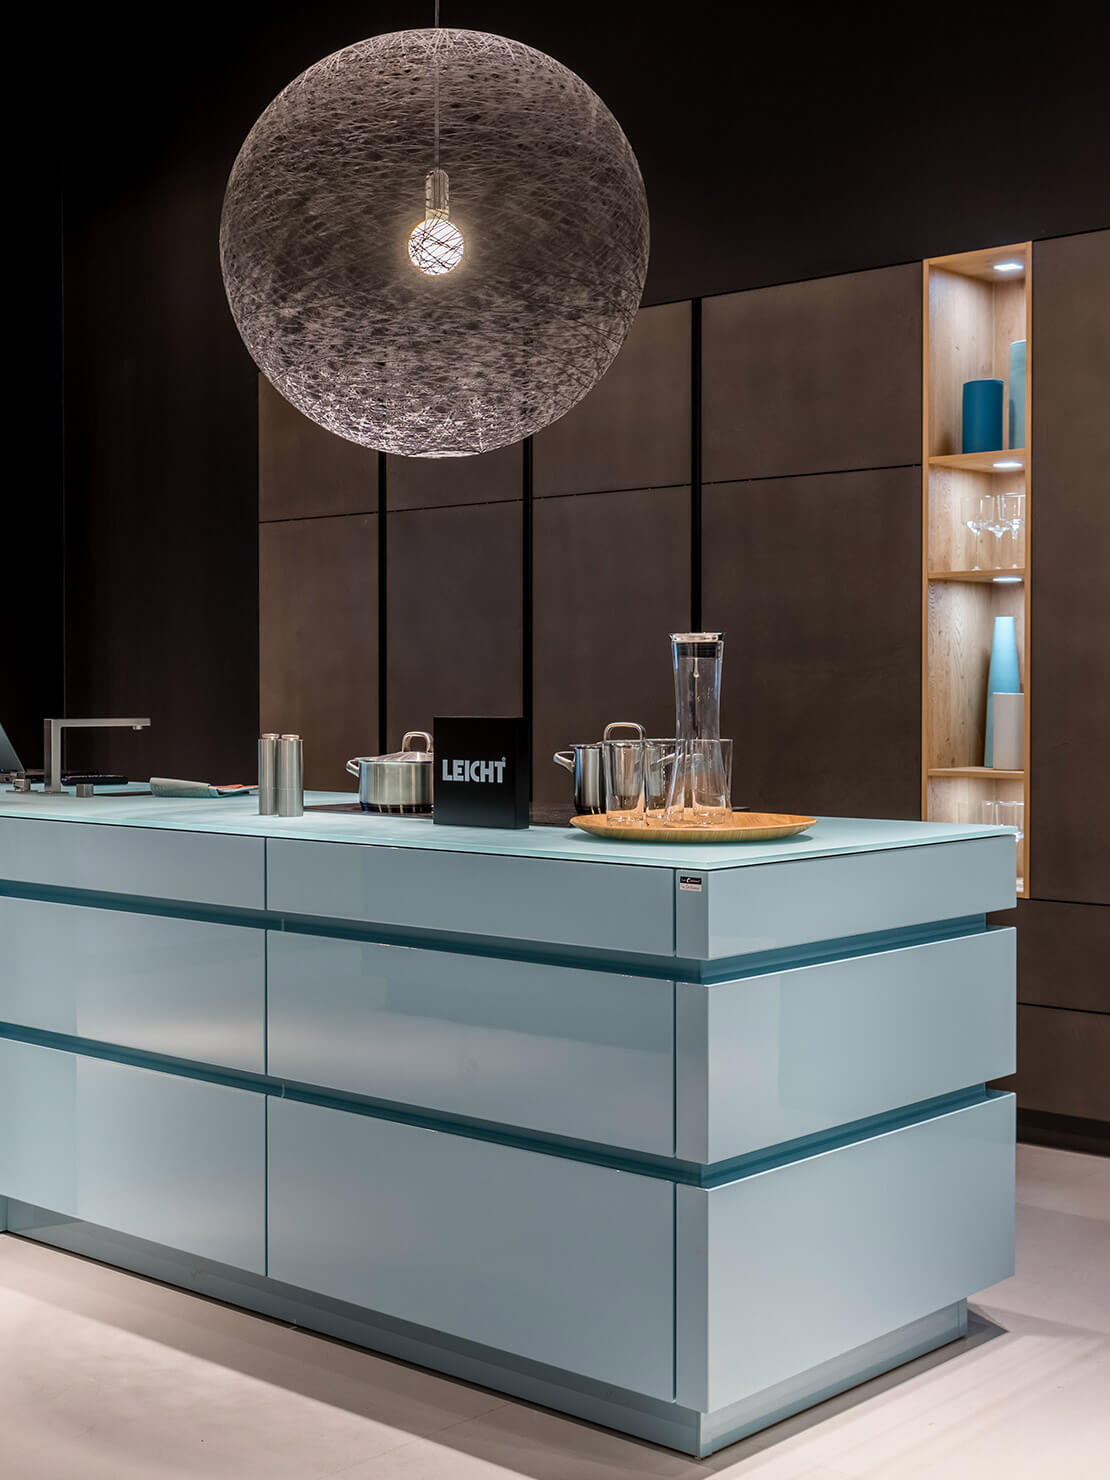 leicht  le corbusier design kitchens  high quality kitchens